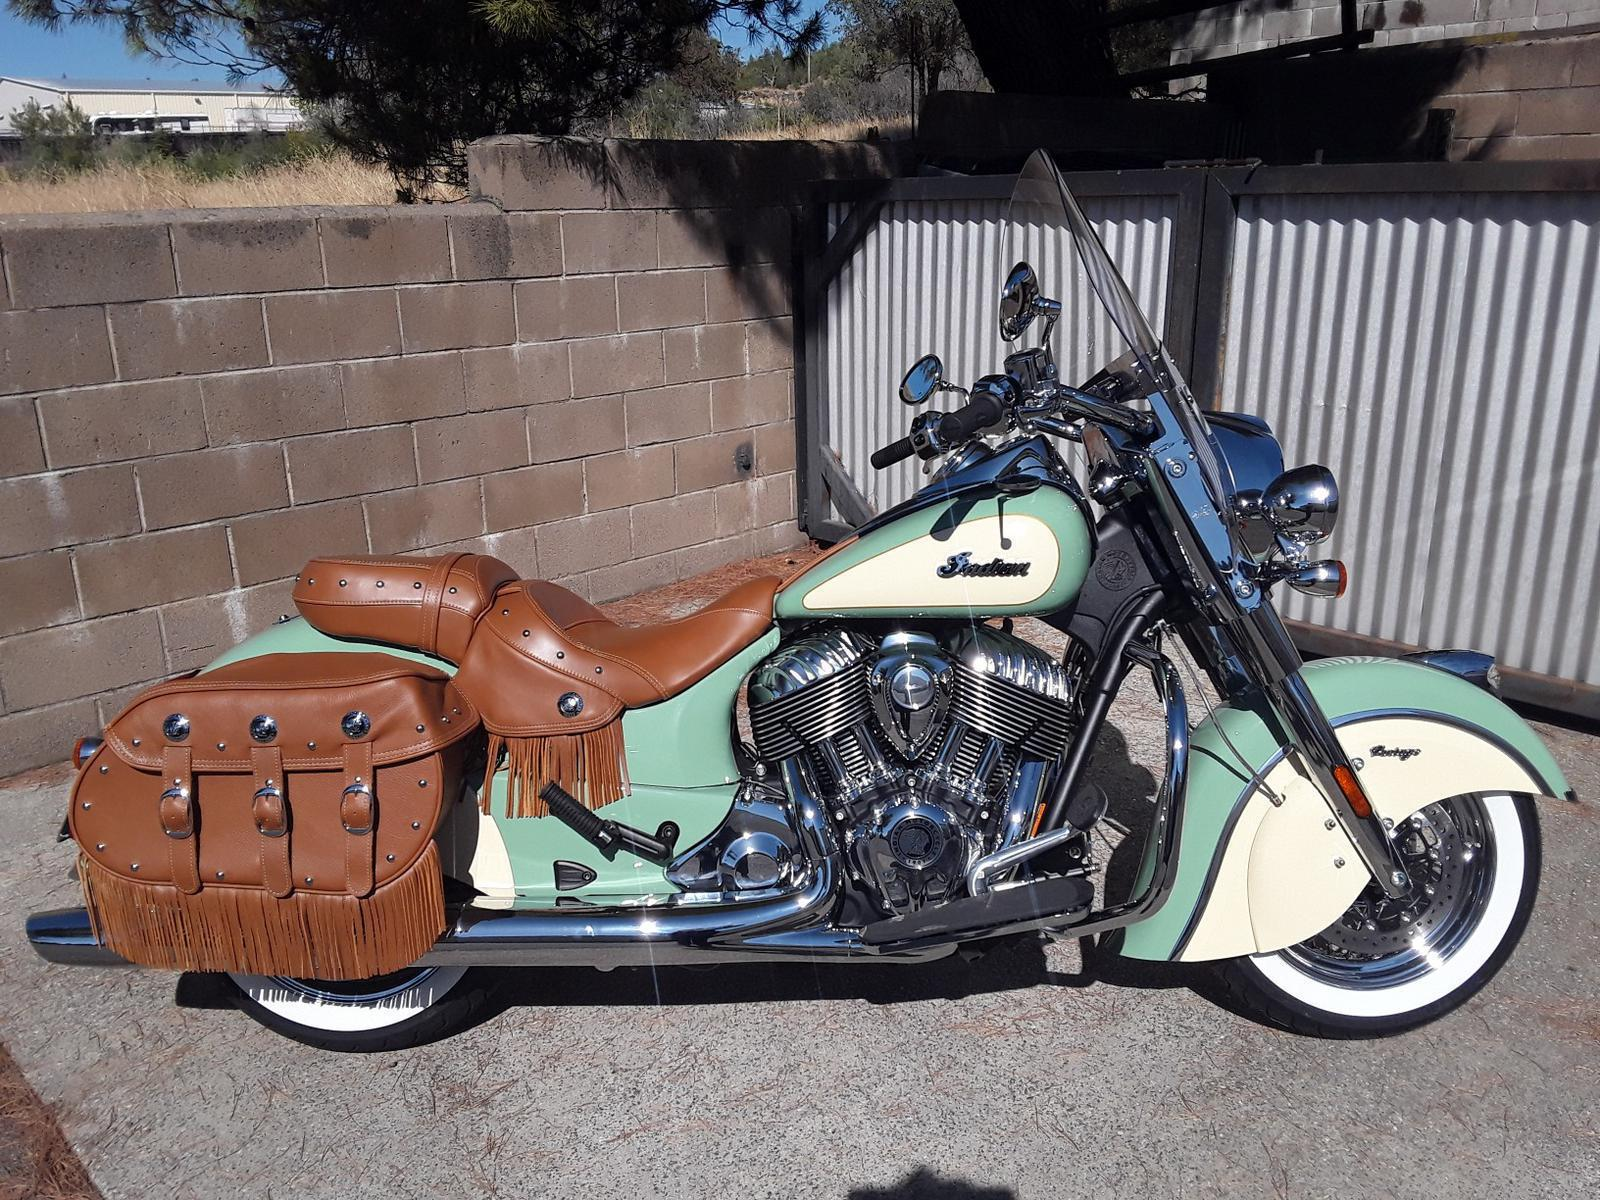 Indian Chief Vintage >> 2019 Indian Motorcycle Chief Vintage Wllw Grn Ivory Cream Cal